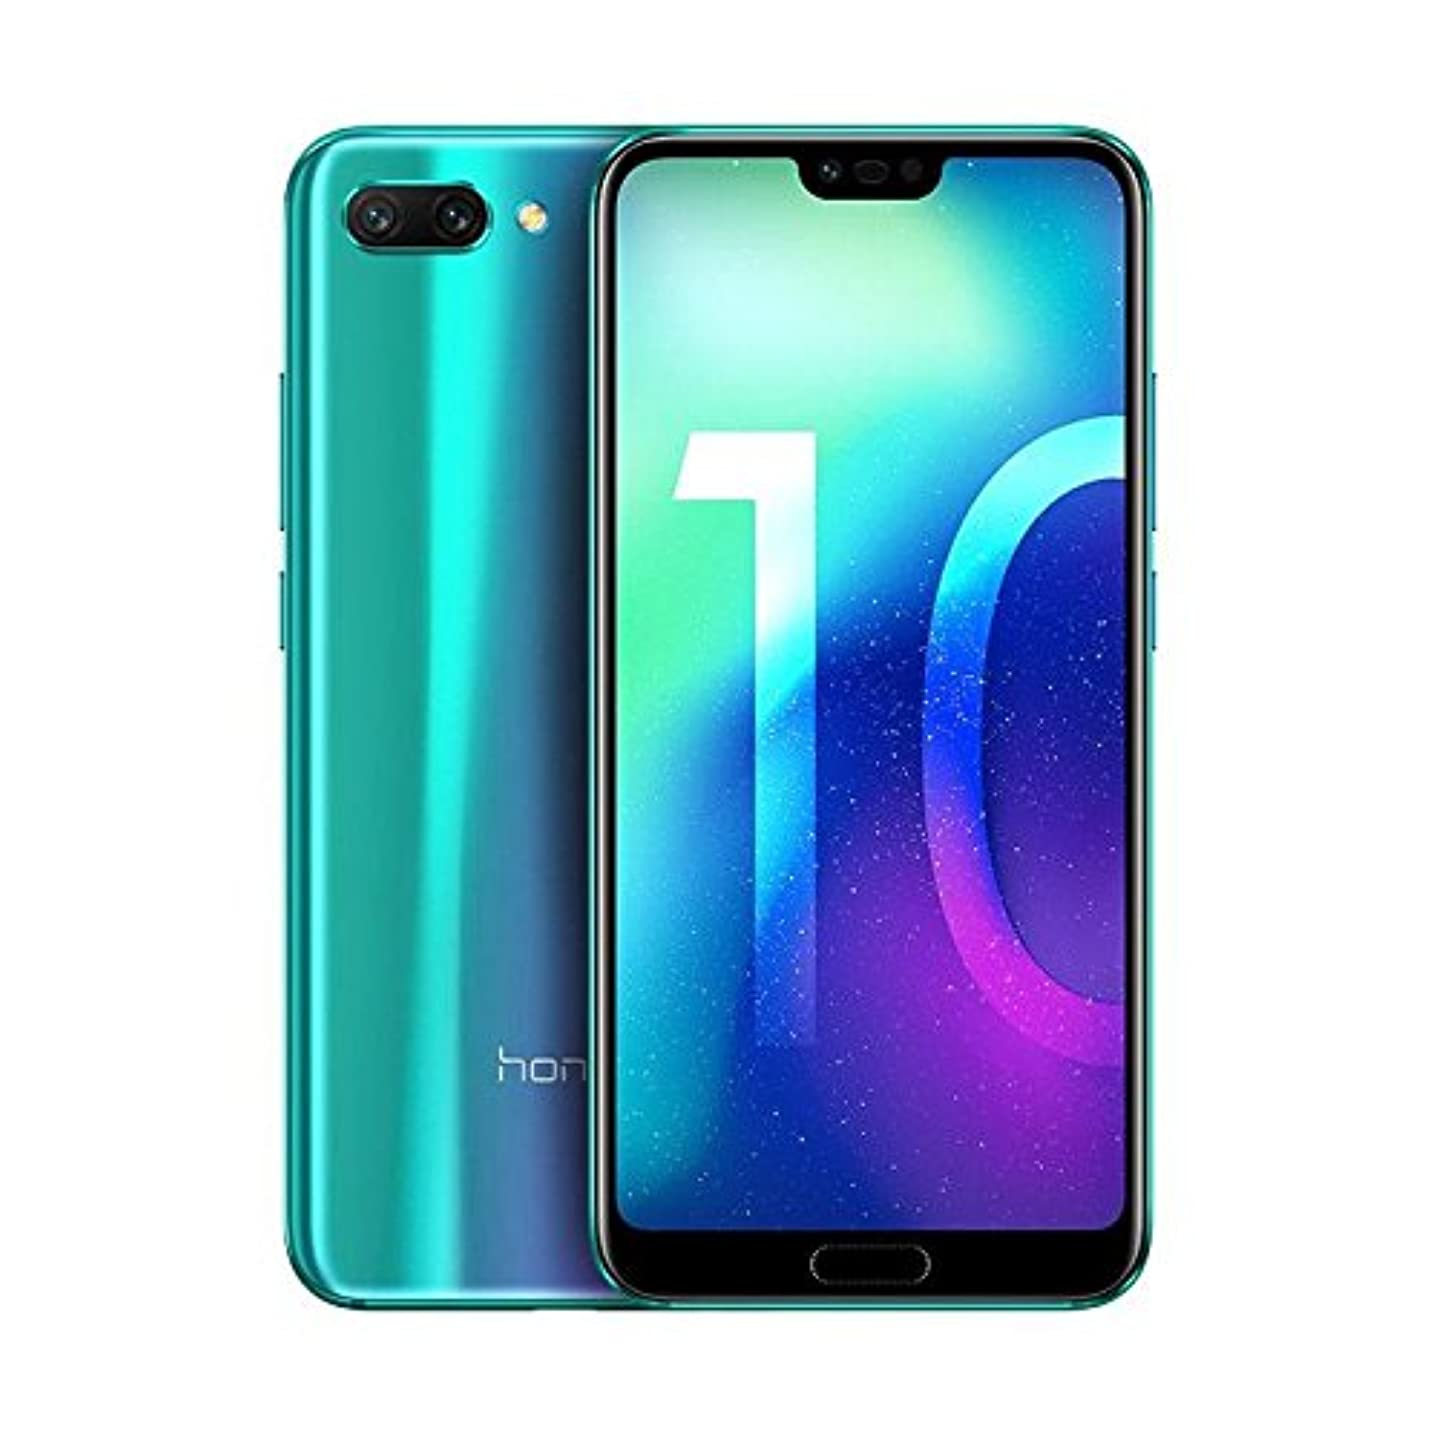 Huawei Honor 10 (COL-L29) 128GB Phantom Green, Dual Sim, Dual Camera 24MP+16MP, 4GB RAM, GSM Unlocked International Model, No Warranty